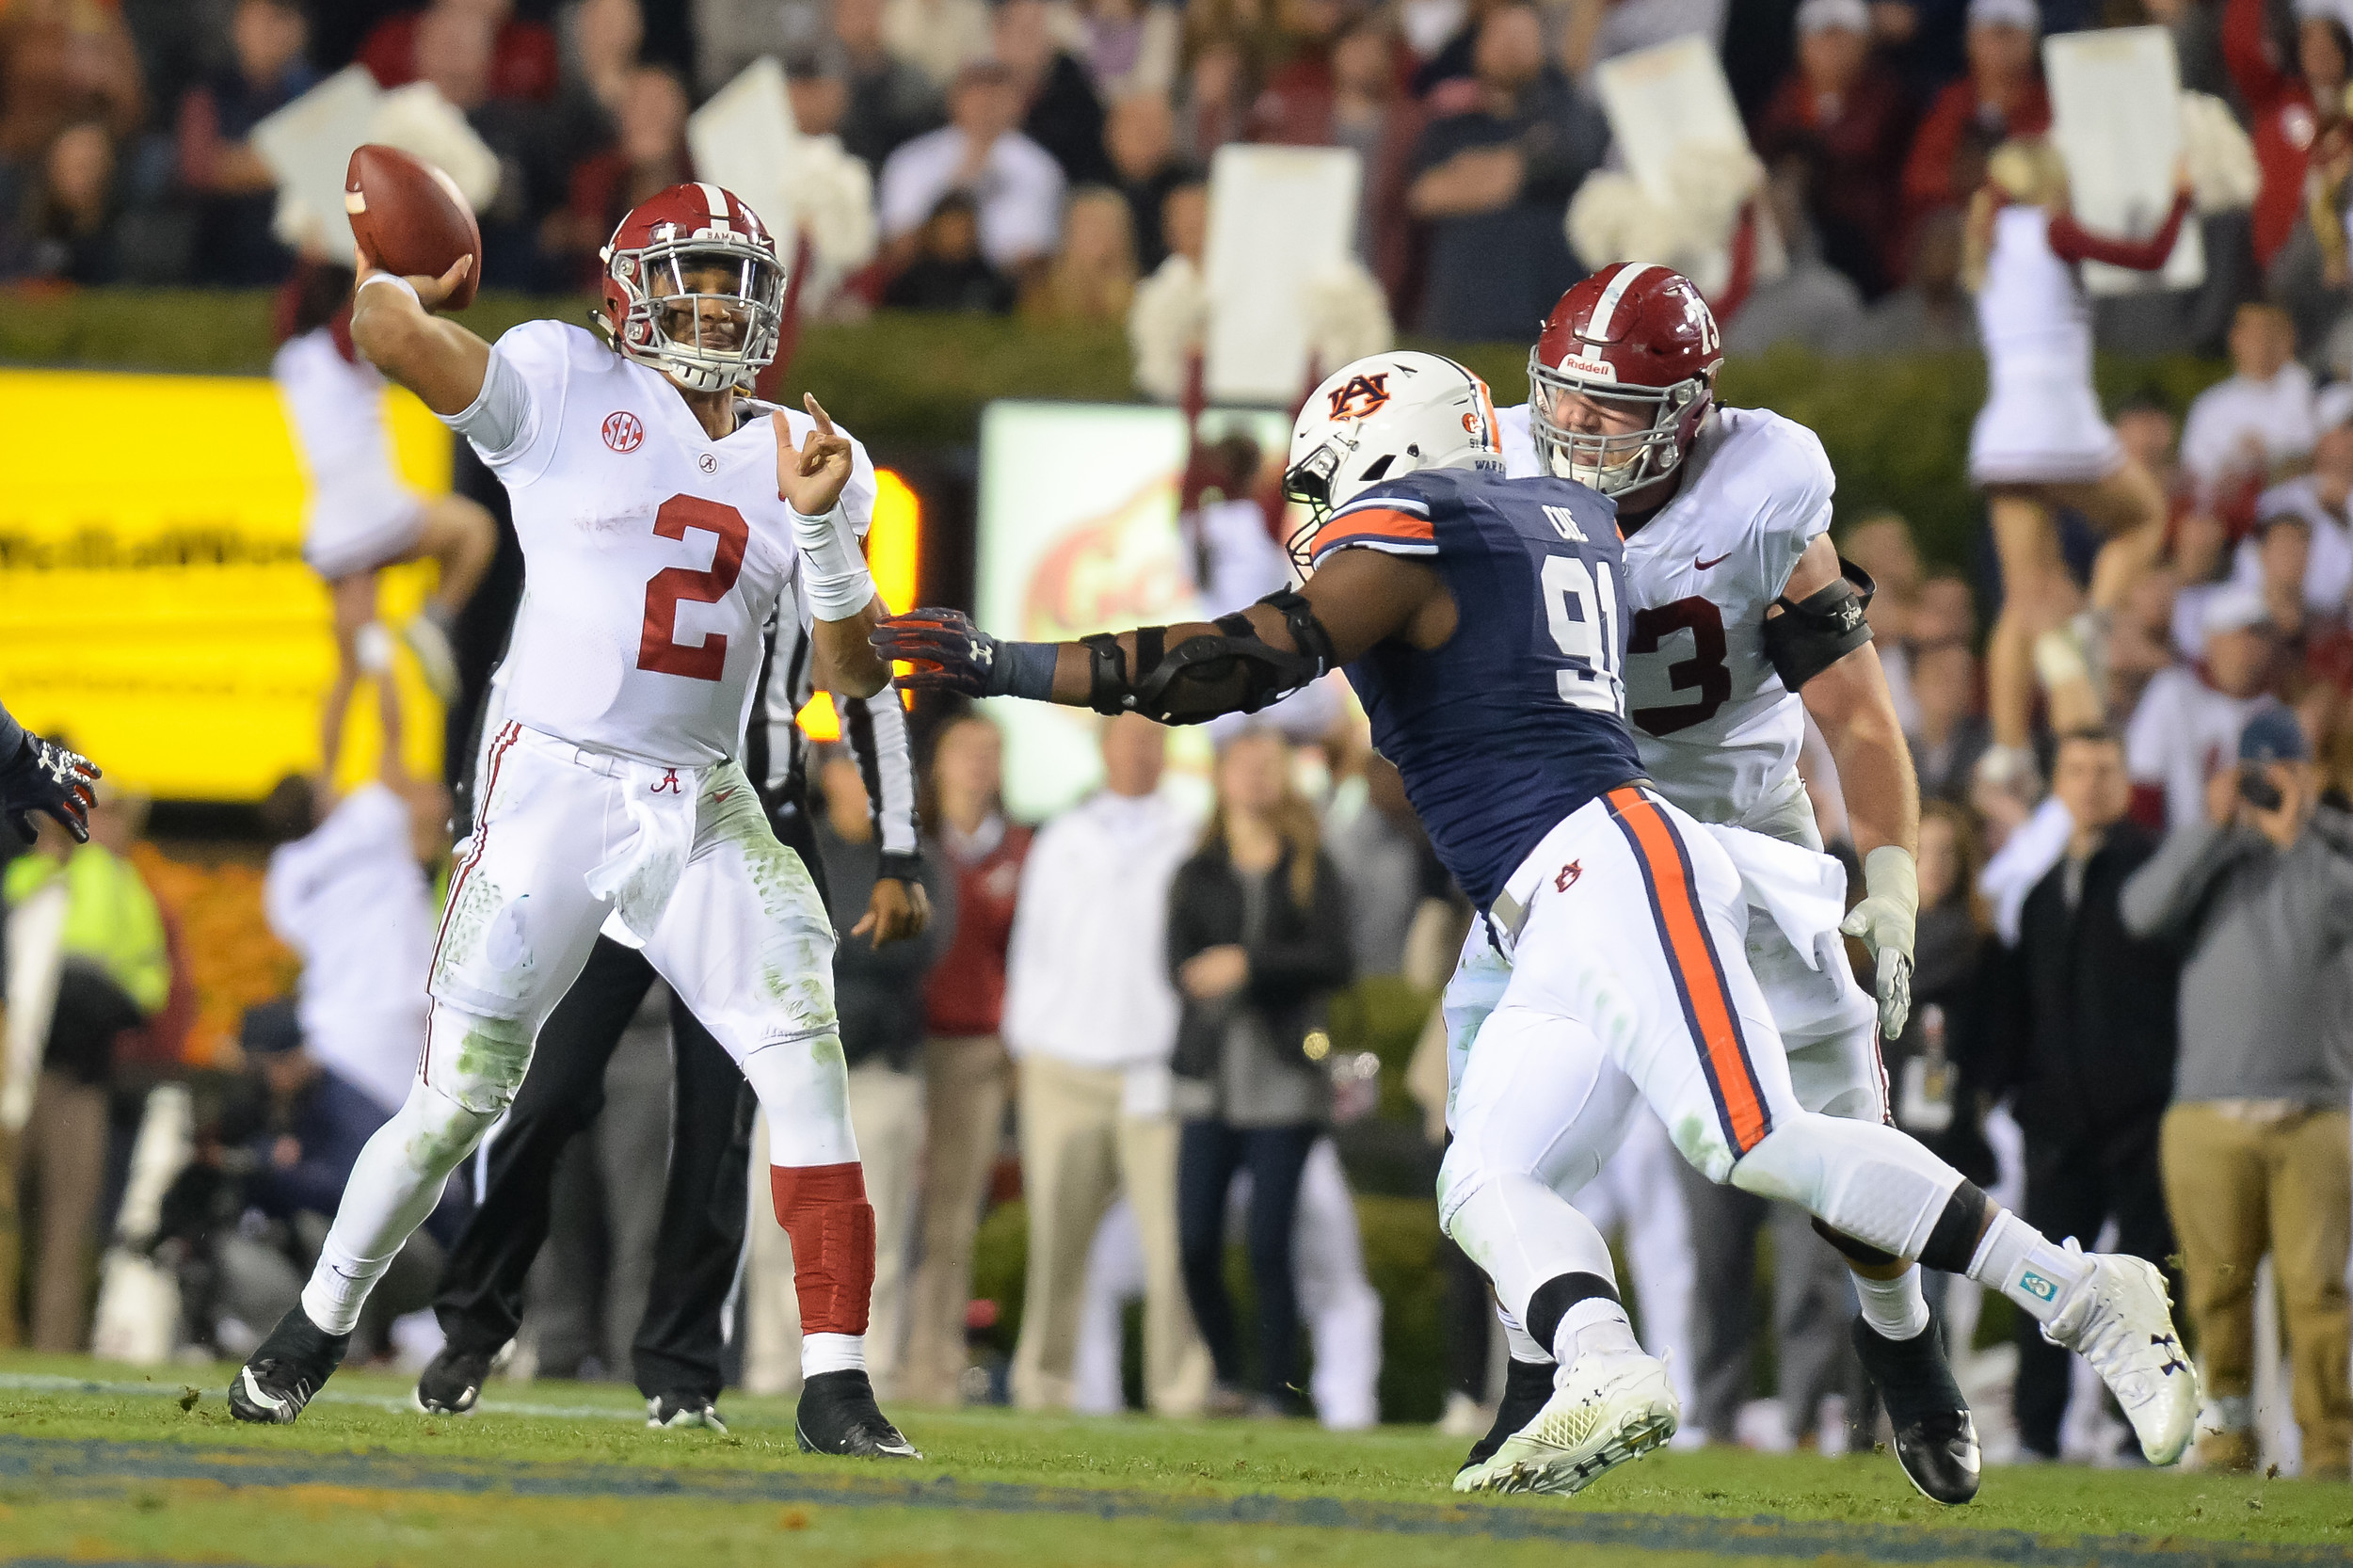 Alabama Crimson Tide quarterback Jalen Hurts (2) is pressured by Auburn Tigers defensive lineman Nick Coe (91) during the second half of Saturday's game, at Jordan-Hare Stadium.